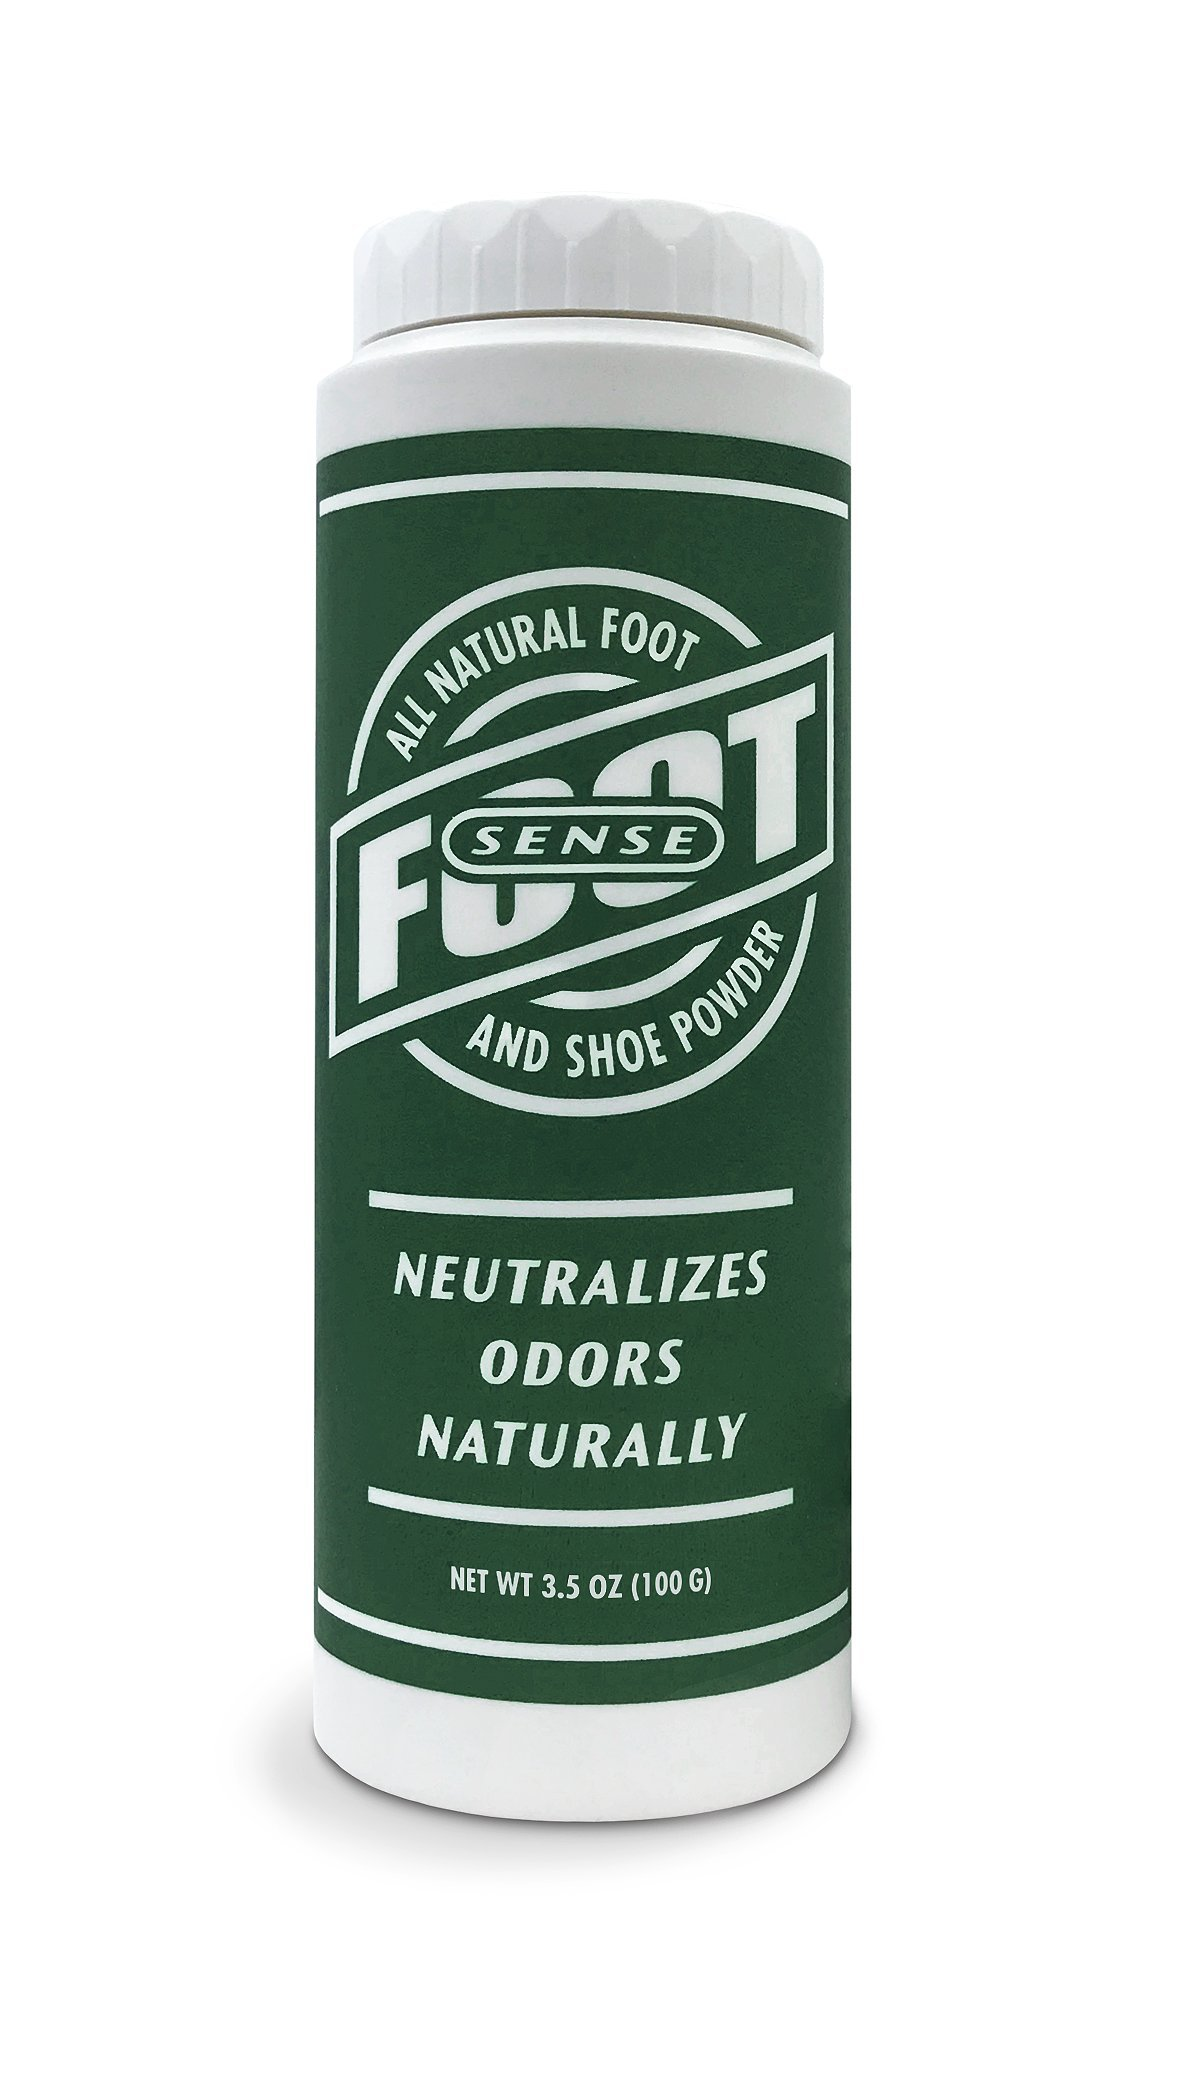 FOOT SENSE All Natural Smelly Shoe & Foot Powder - Foot Odor Eliminator lasts up to 6 months. Safely kills bacteria. Natural formula for smelly shoes and stinky feet. Protects disinfects & deodorizes.